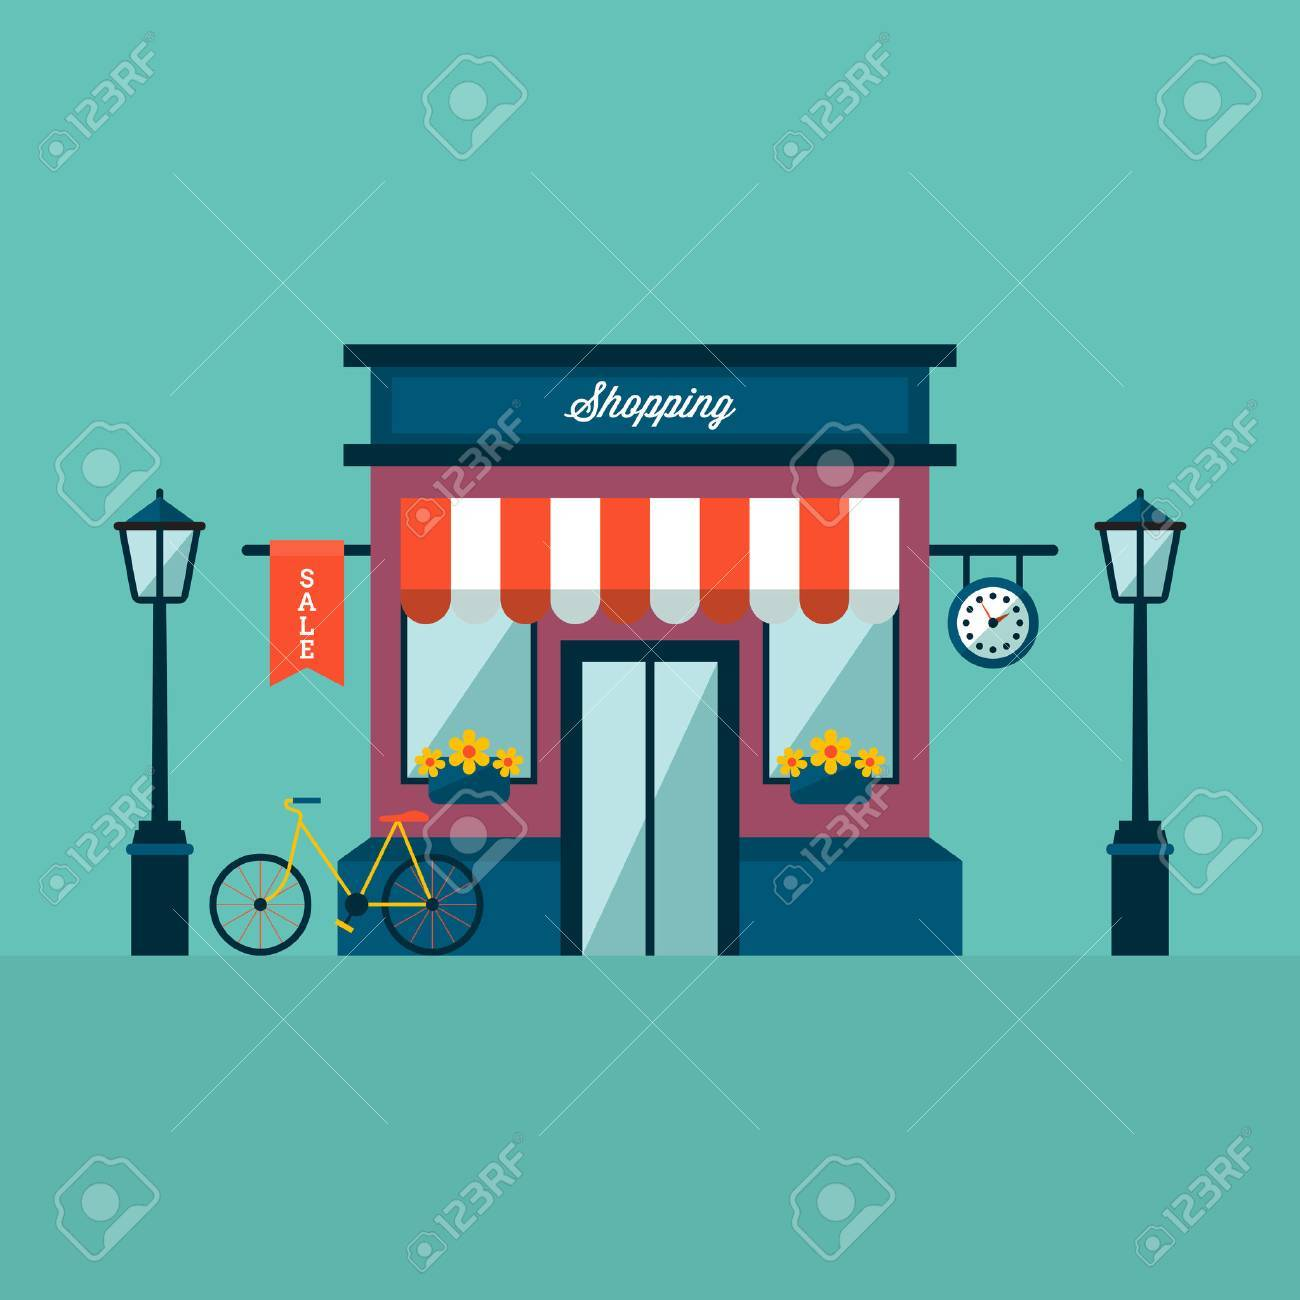 Shop building with bycicle and lamps Stock Vector - 64218819